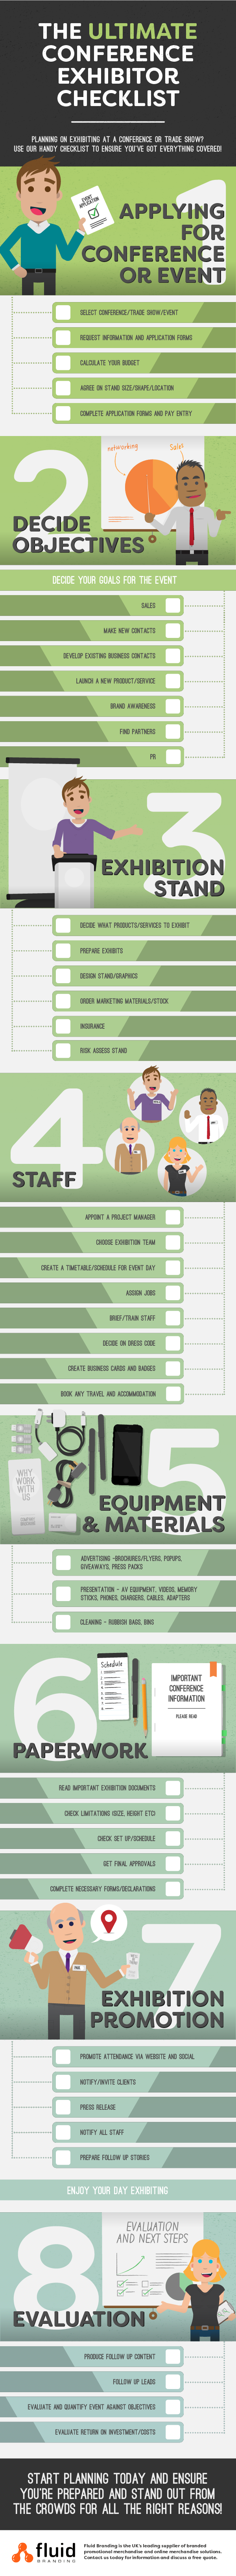 The Ultimate Conference Exhibitor Checklist